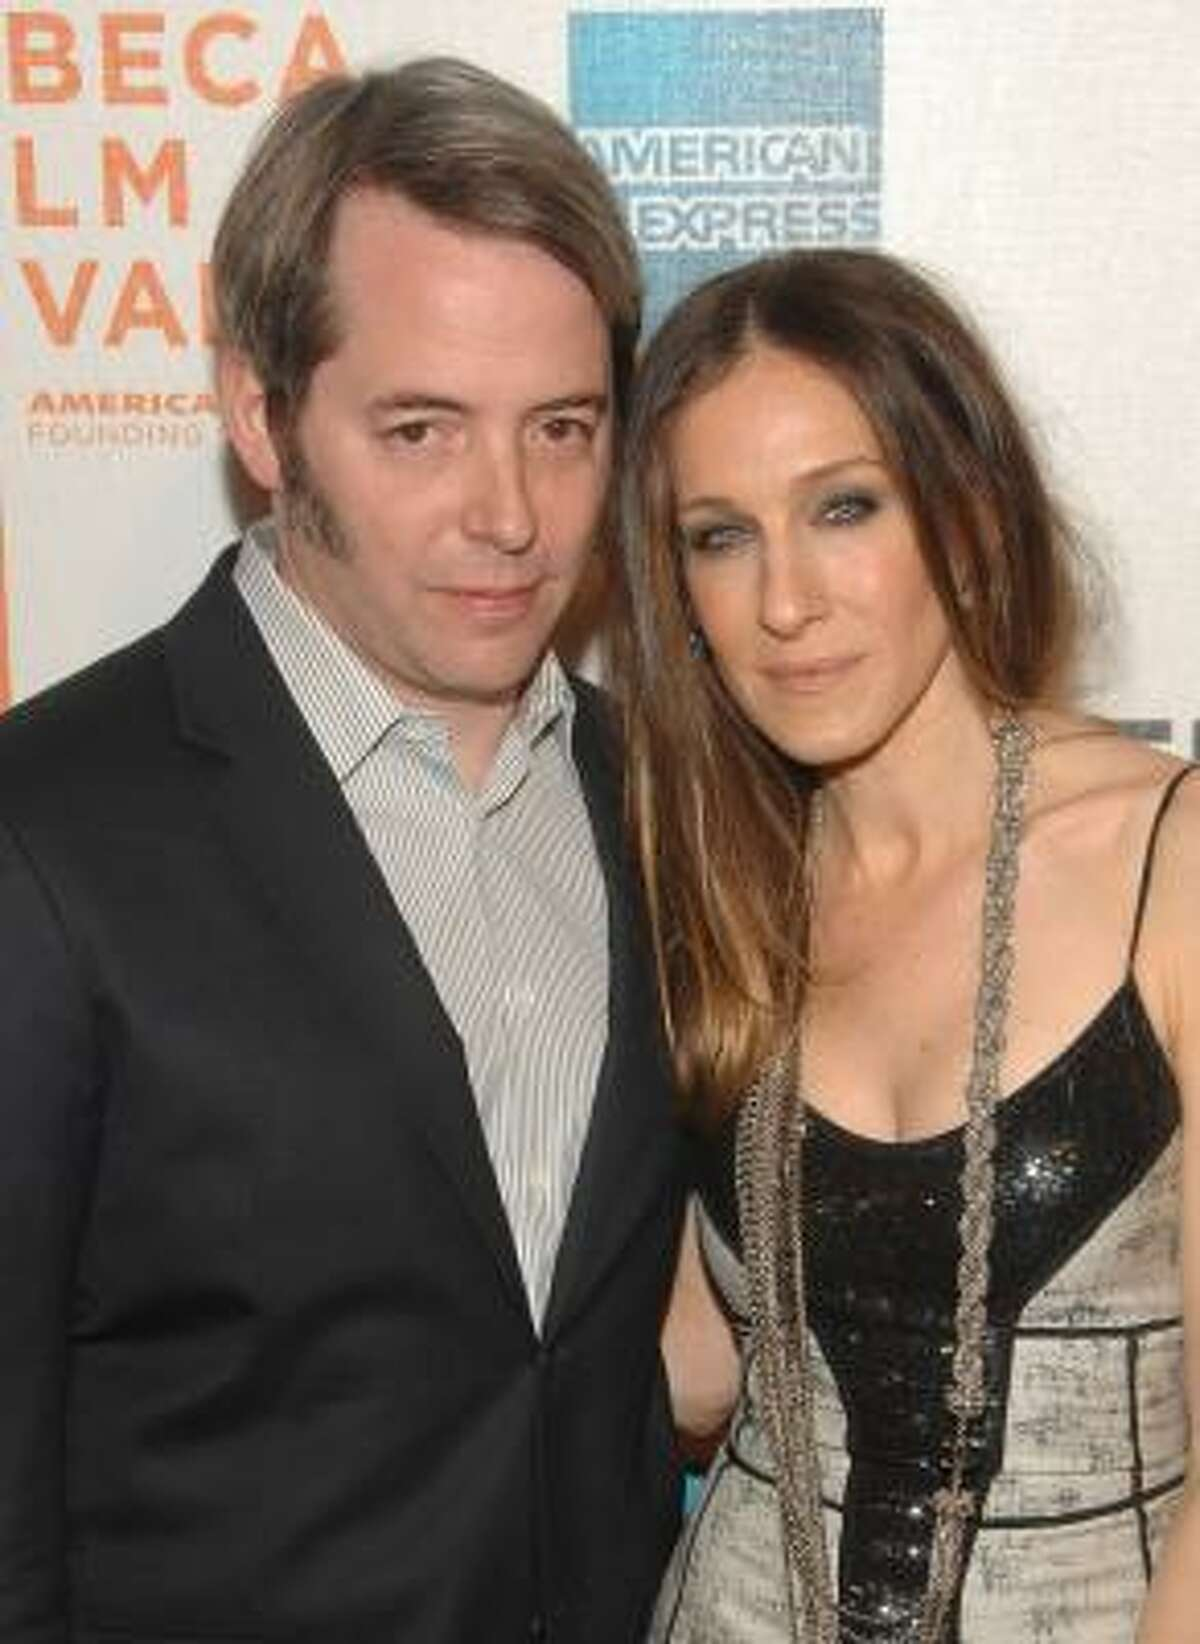 Sarah Jessica Parker and Matthew Broderick are expecting the birth of twin daughters this summer through a surrogate pregnancy.